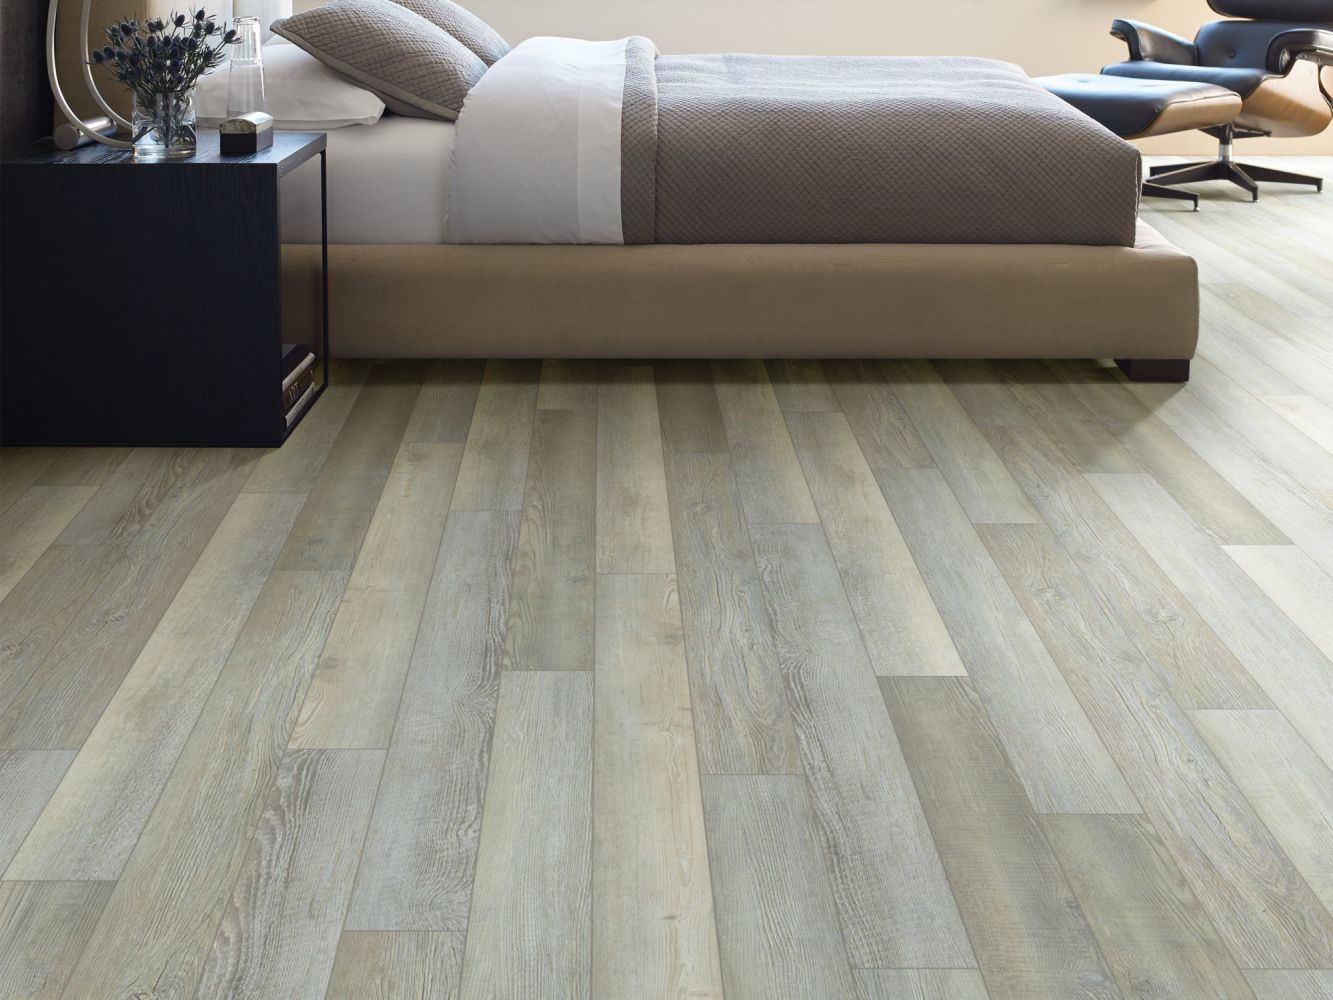 Shaw Floors Resilient Property Solutions Resolute 5″ Plus Silo Pine 00190_VE277